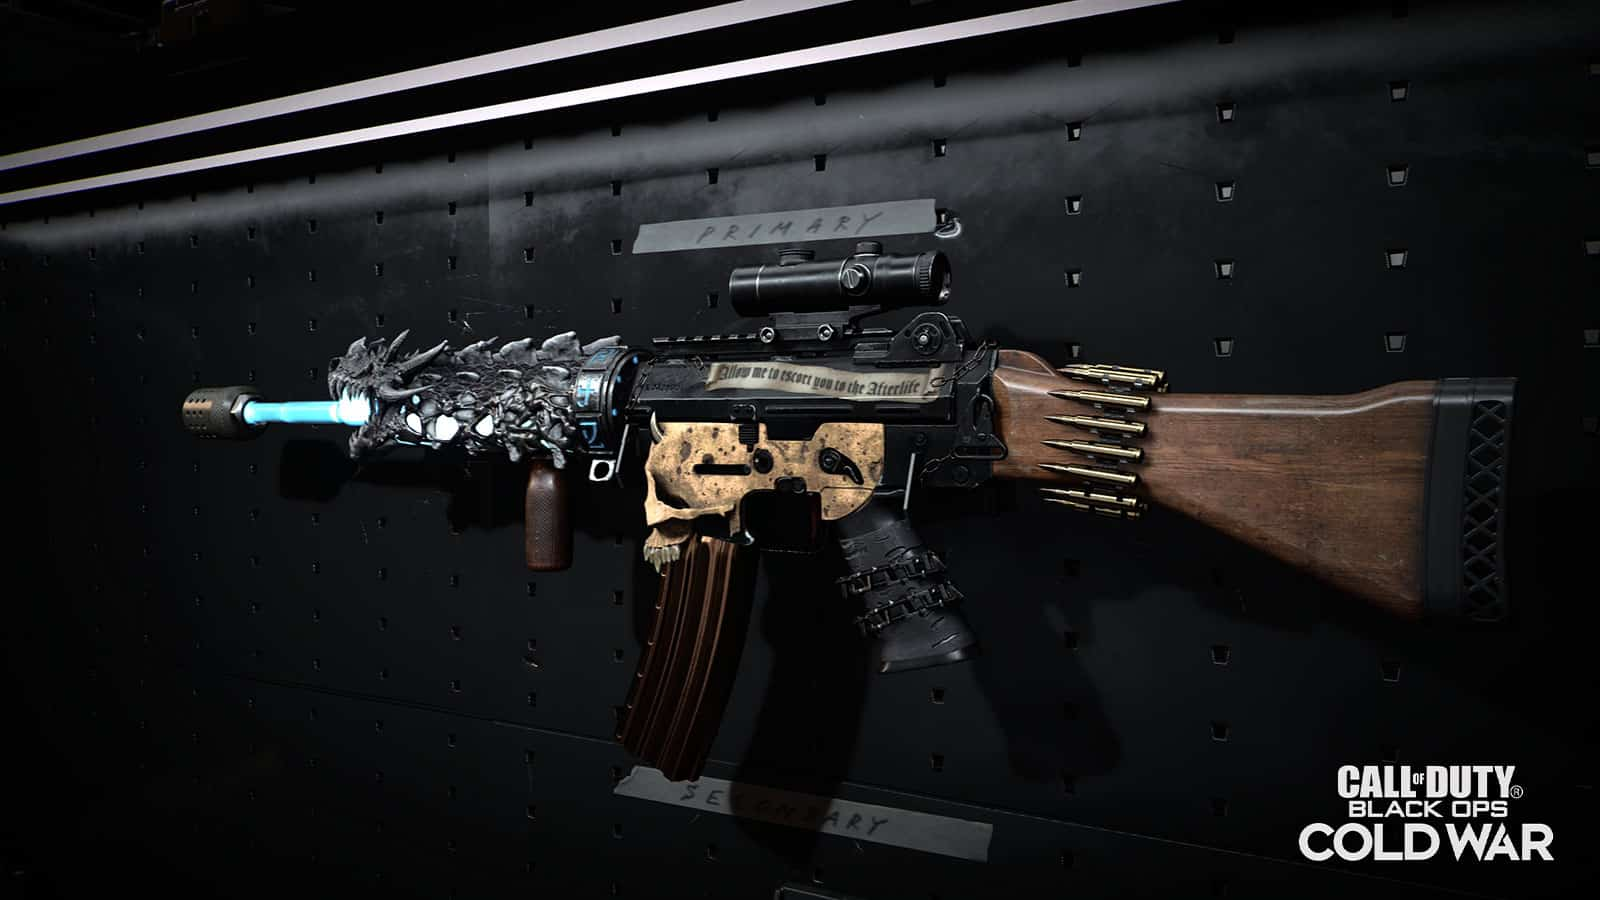 MAJ Black Ops Cold War du 9 avril : Rivas, Plans d'arme customisés